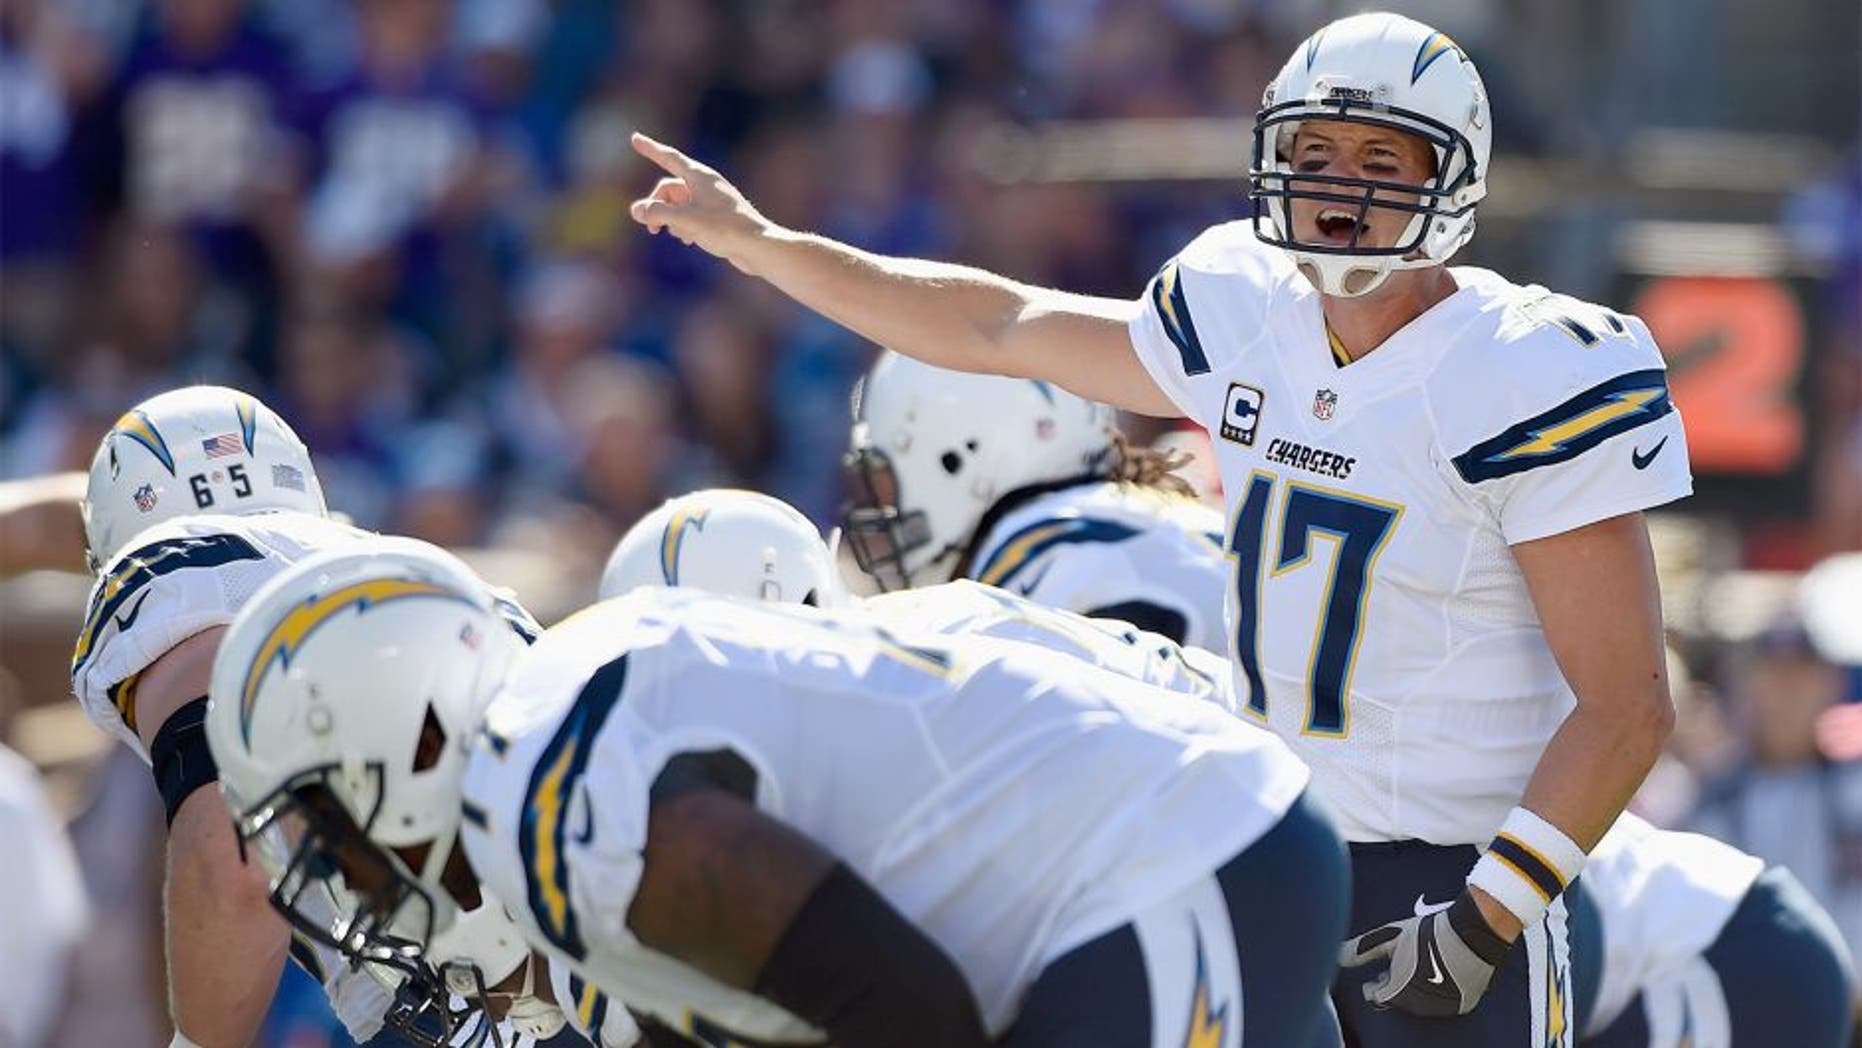 MINNEAPOLIS, MN - SEPTEMBER 27: Philip Rivers #17 of the San Diego Chargers calls a play at the line of scrimmage against the Minnesota Vikings during the first quarter of the game on September 27, 2015 at TCF Bank Stadium in Minneapolis, Minnesota. (Photo by Hannah Foslien/Getty Images)